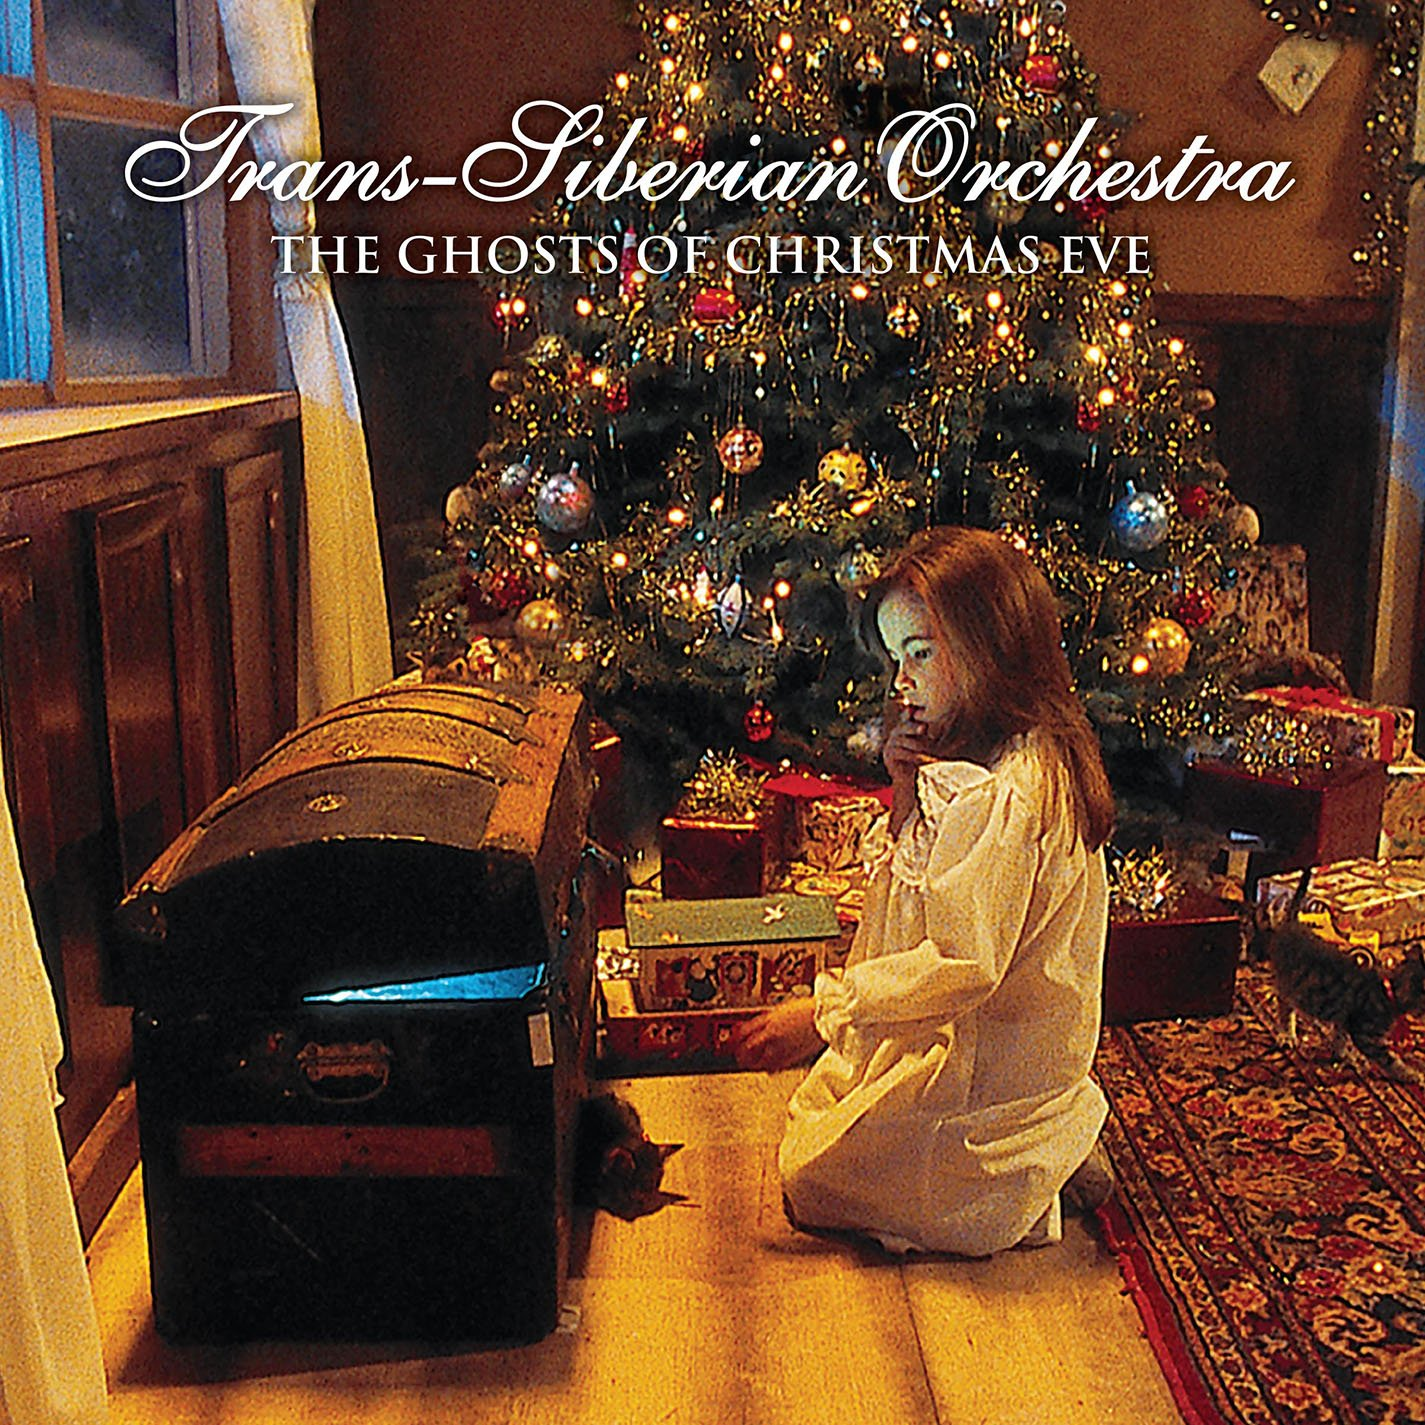 Tso Ghosts Of Christmas Eve 2020 Trans Siberian Orchestra   The Ghosts Of Christmas Eve   Amazon